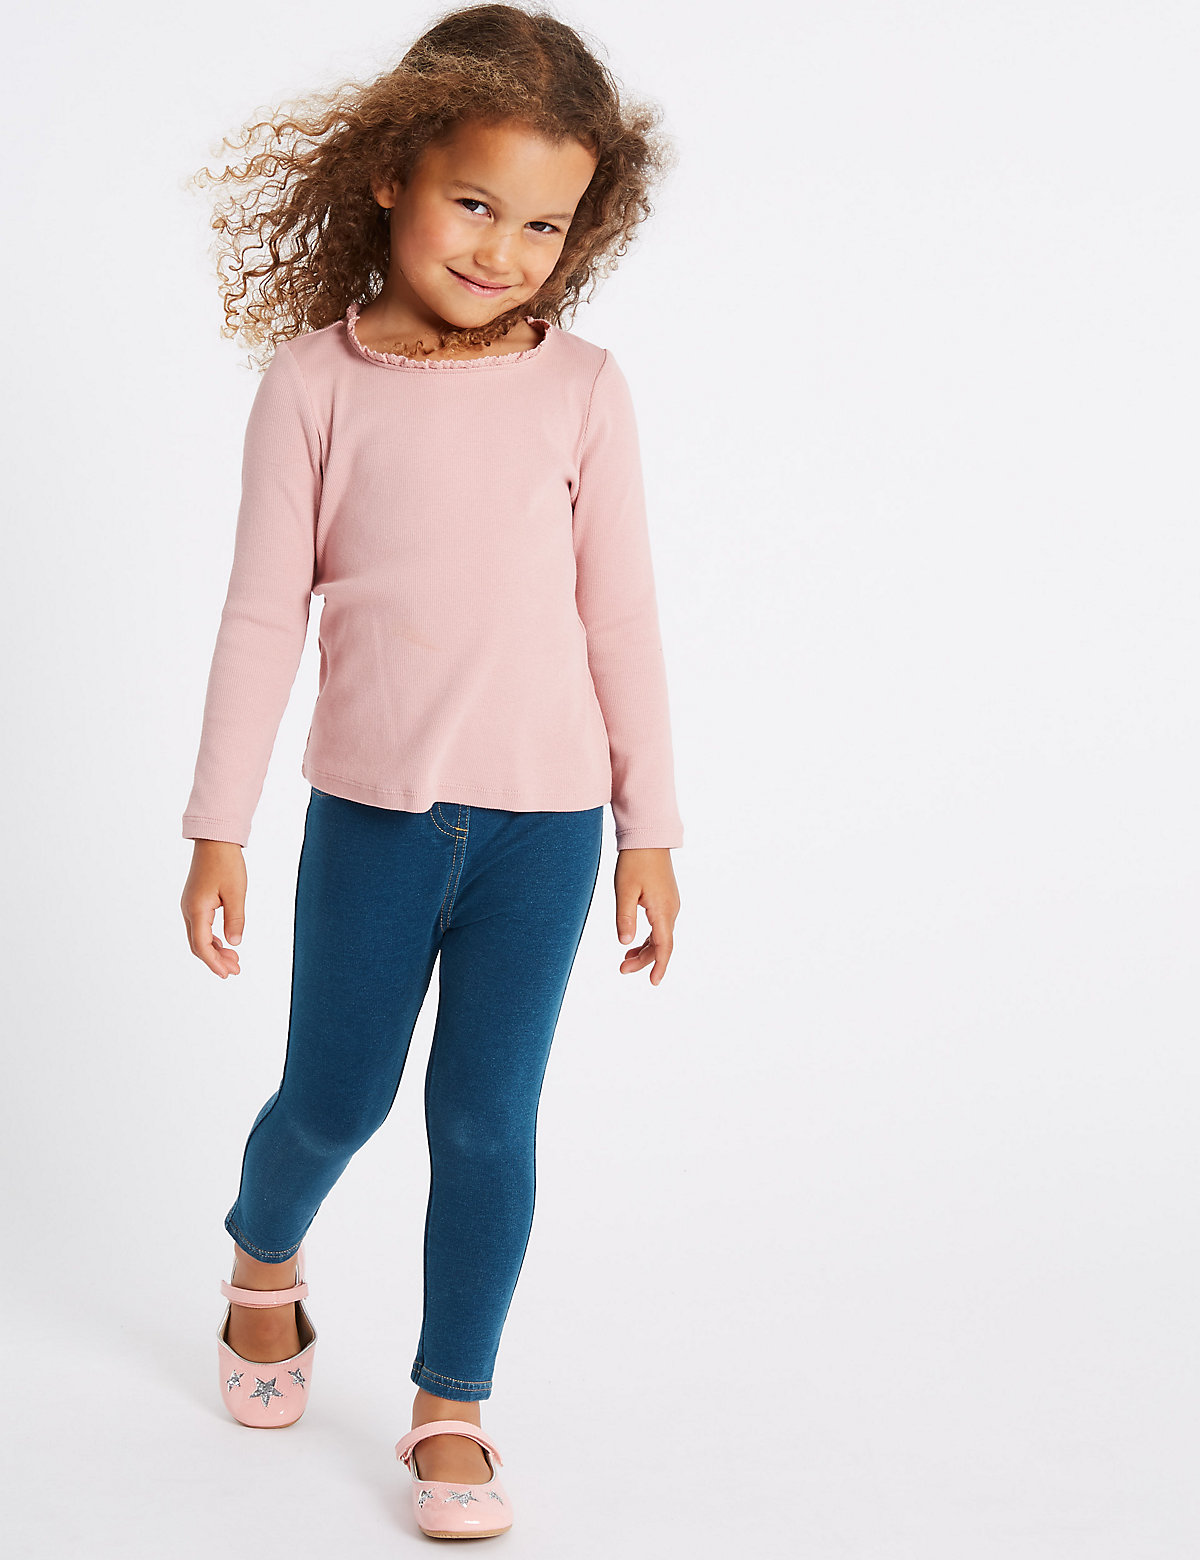 Cotton Jeggings with Stretch (3 Months - 7 Years)